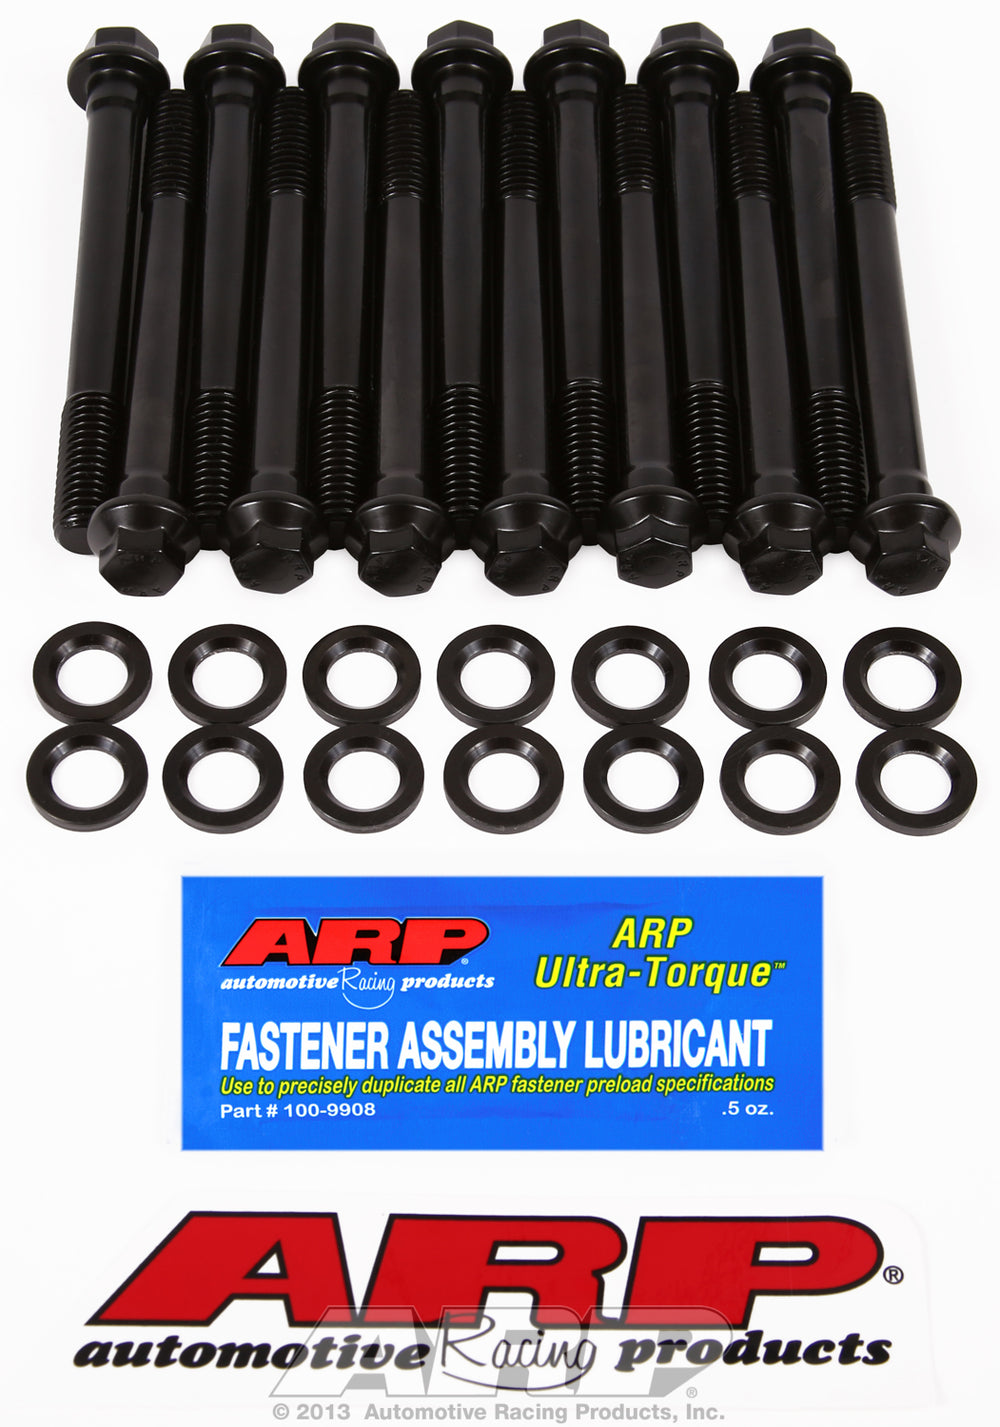 High Performance Cylinder Head Bolt Kit for AMC 258 cid inline 6 with 1/2˝ bolts, all same length